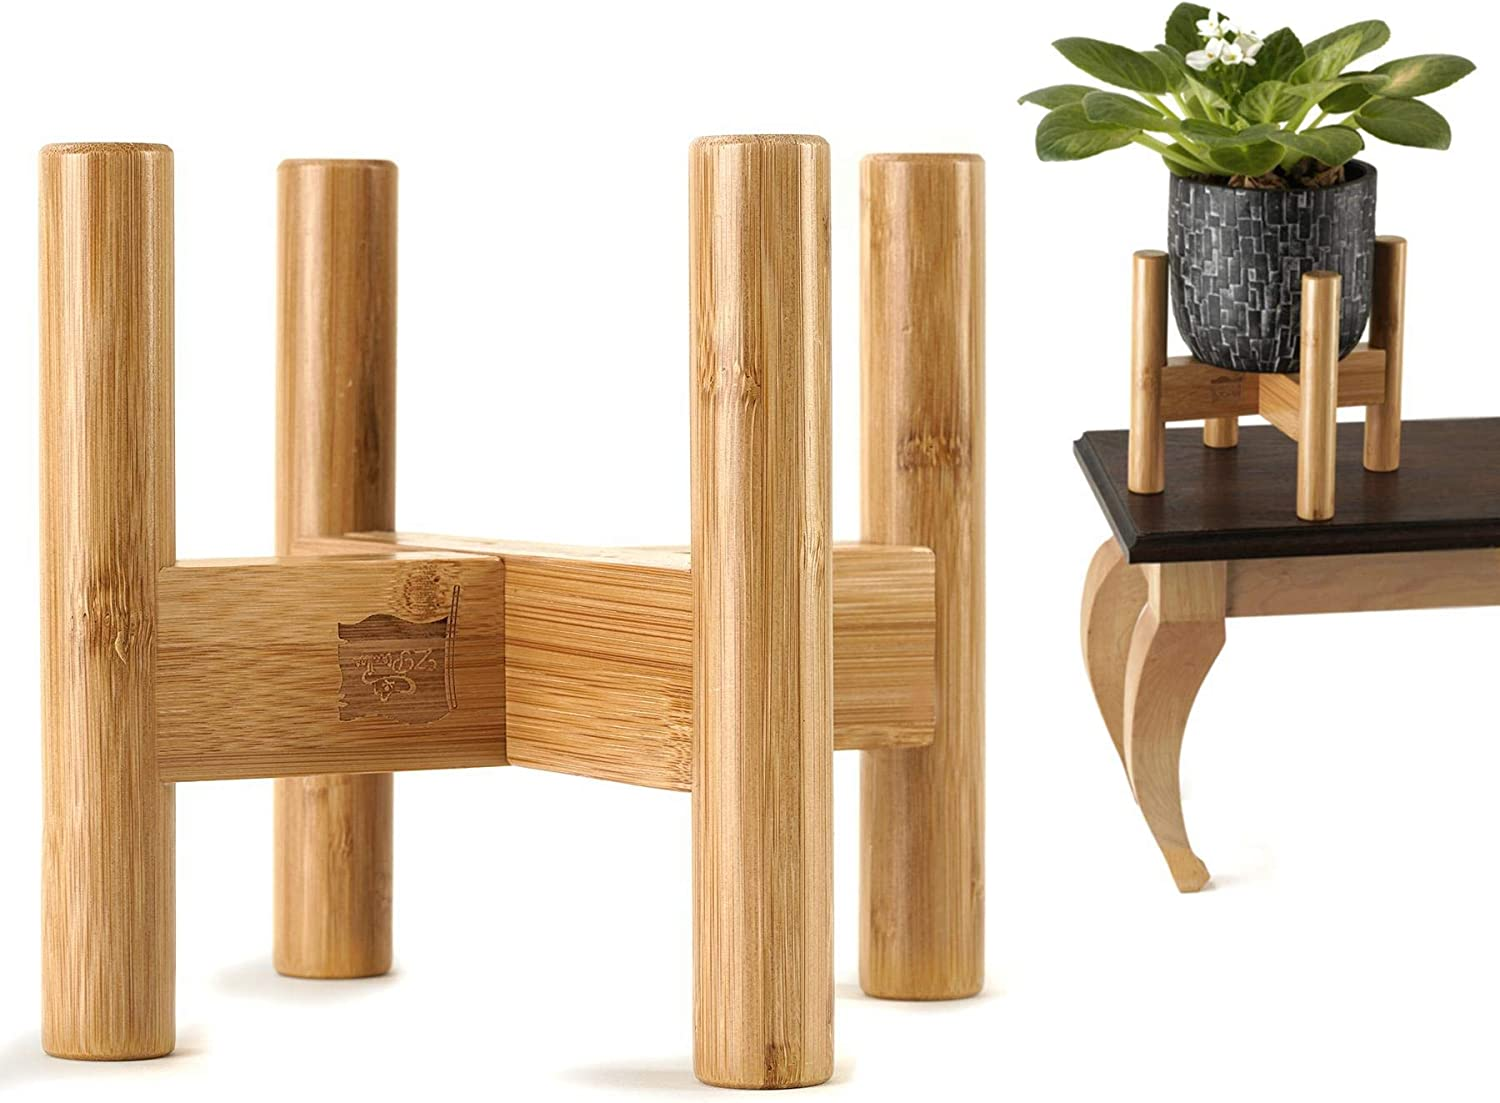 Mini Plant Stand for Indoor Plants, Match Small Planter Pots Sizes 5-6 Inches, Bamboo Wood Holder for Desk, Table Top and Countertop Plants and Flowers